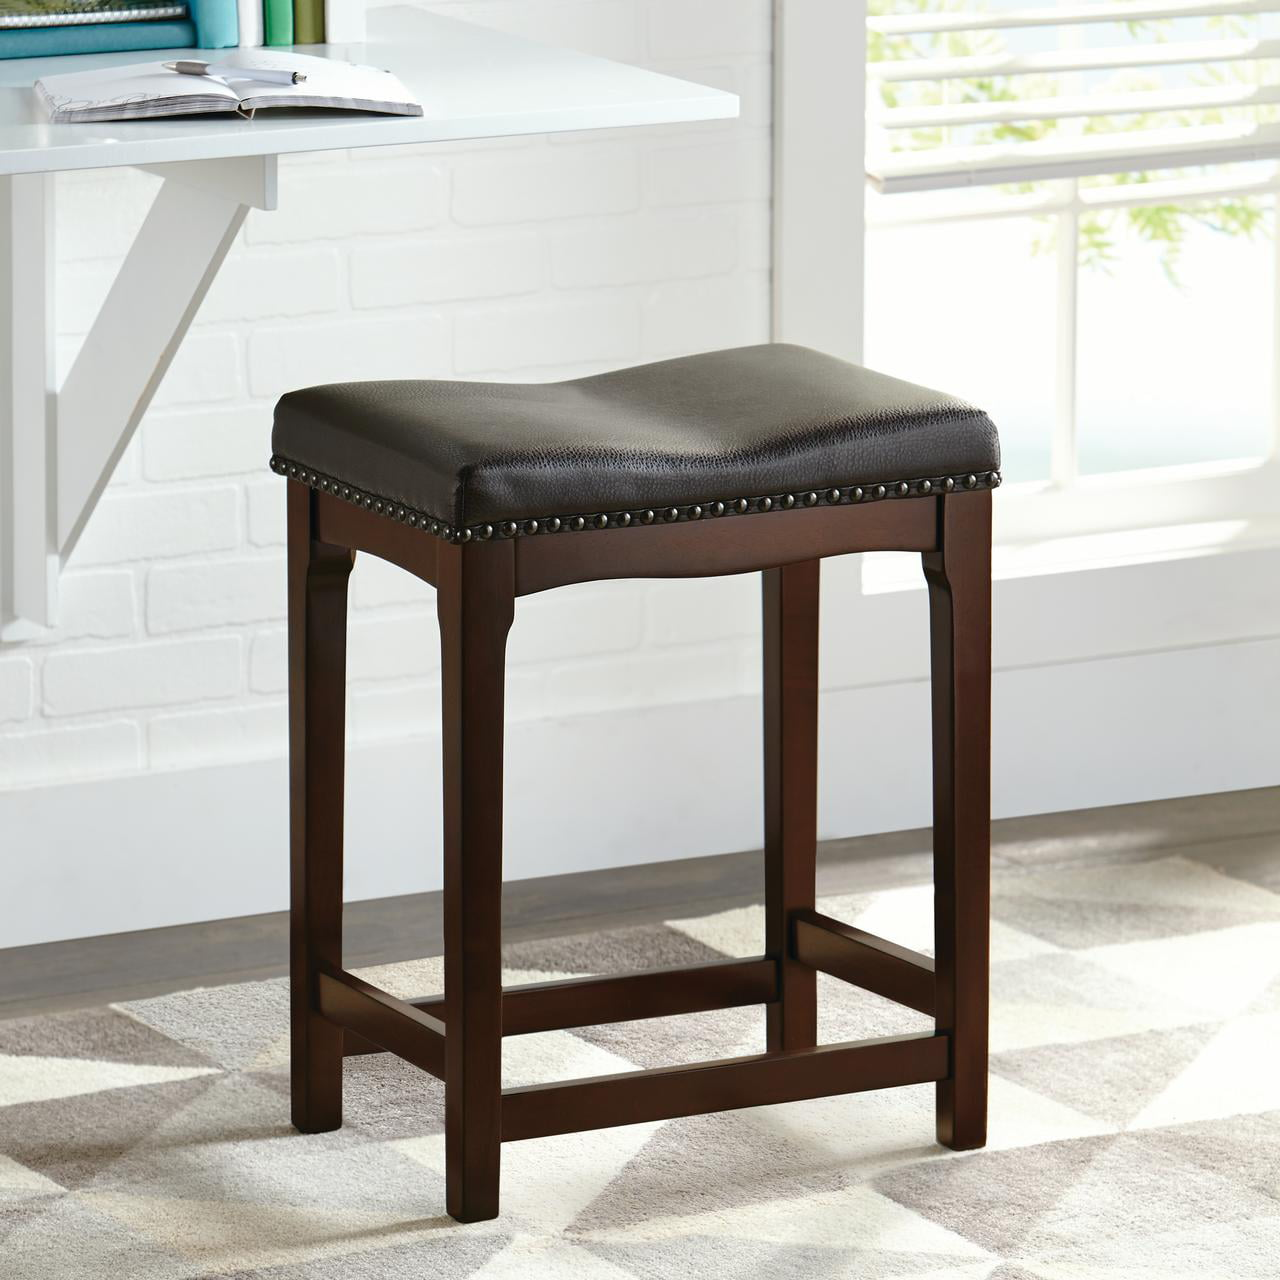 & Winsome Windsor 24-in. Swivel Counter Stool - Walmart.com islam-shia.org